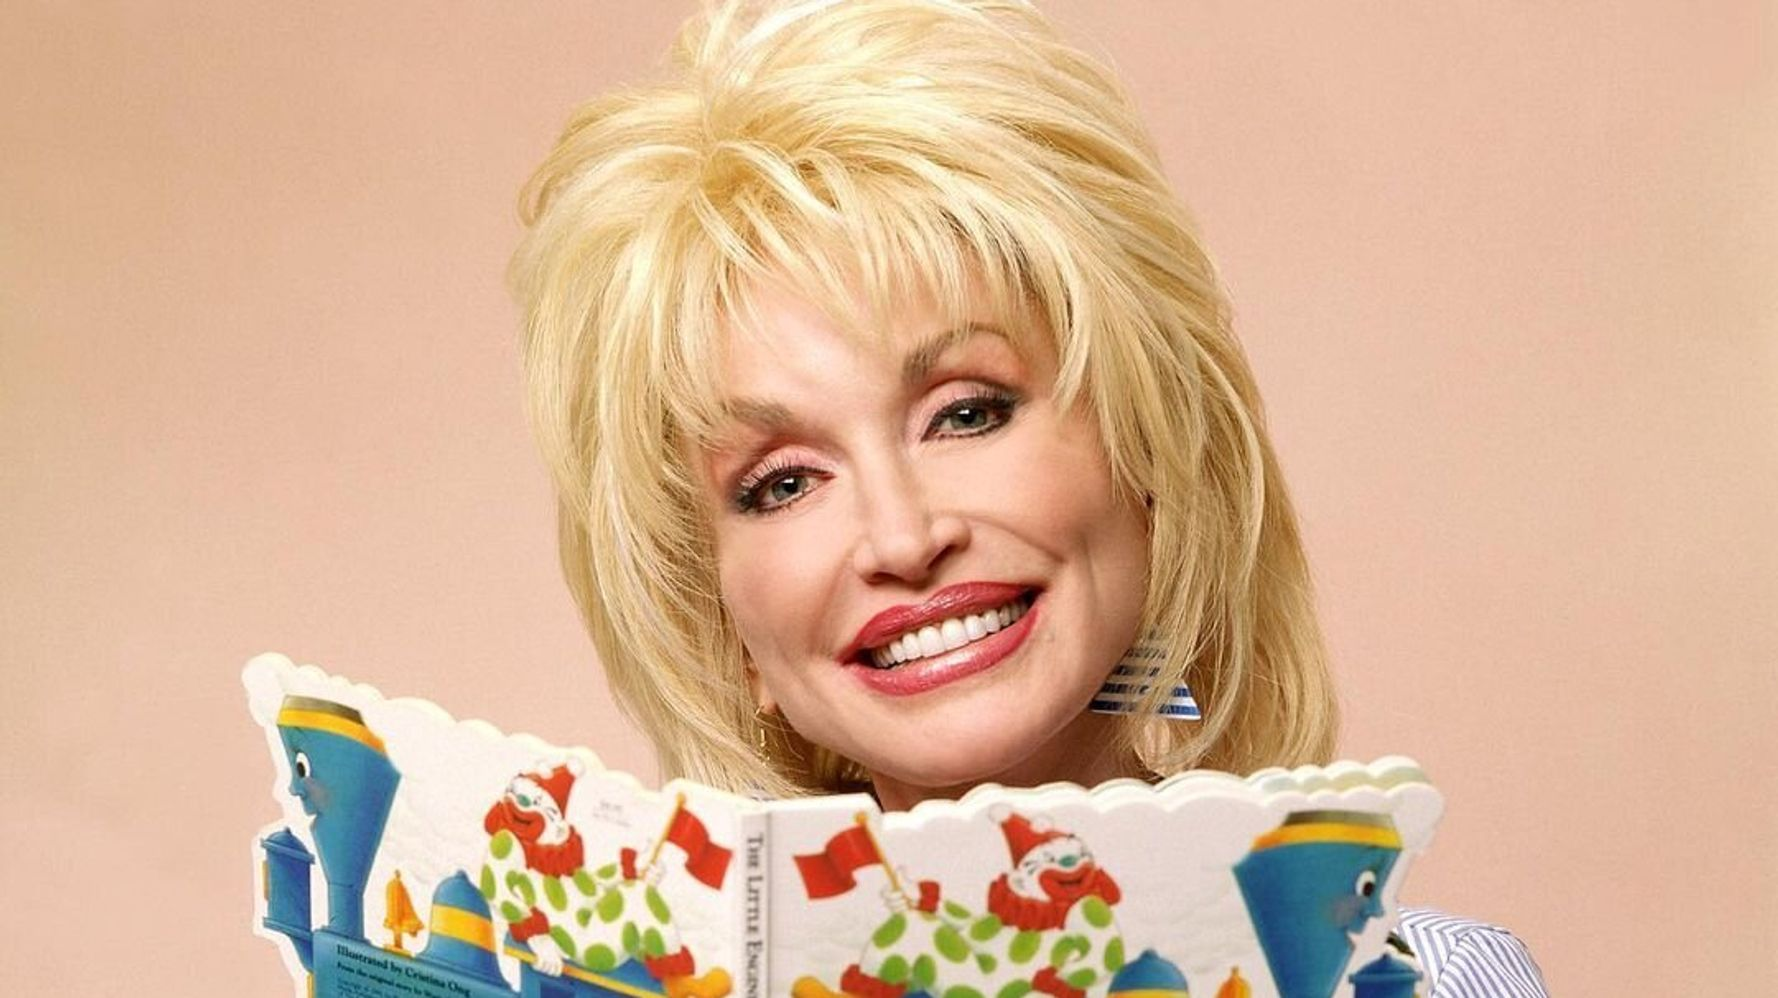 Kids In Fort McMurray Can Once Again Receive Free Books From Dolly Parton